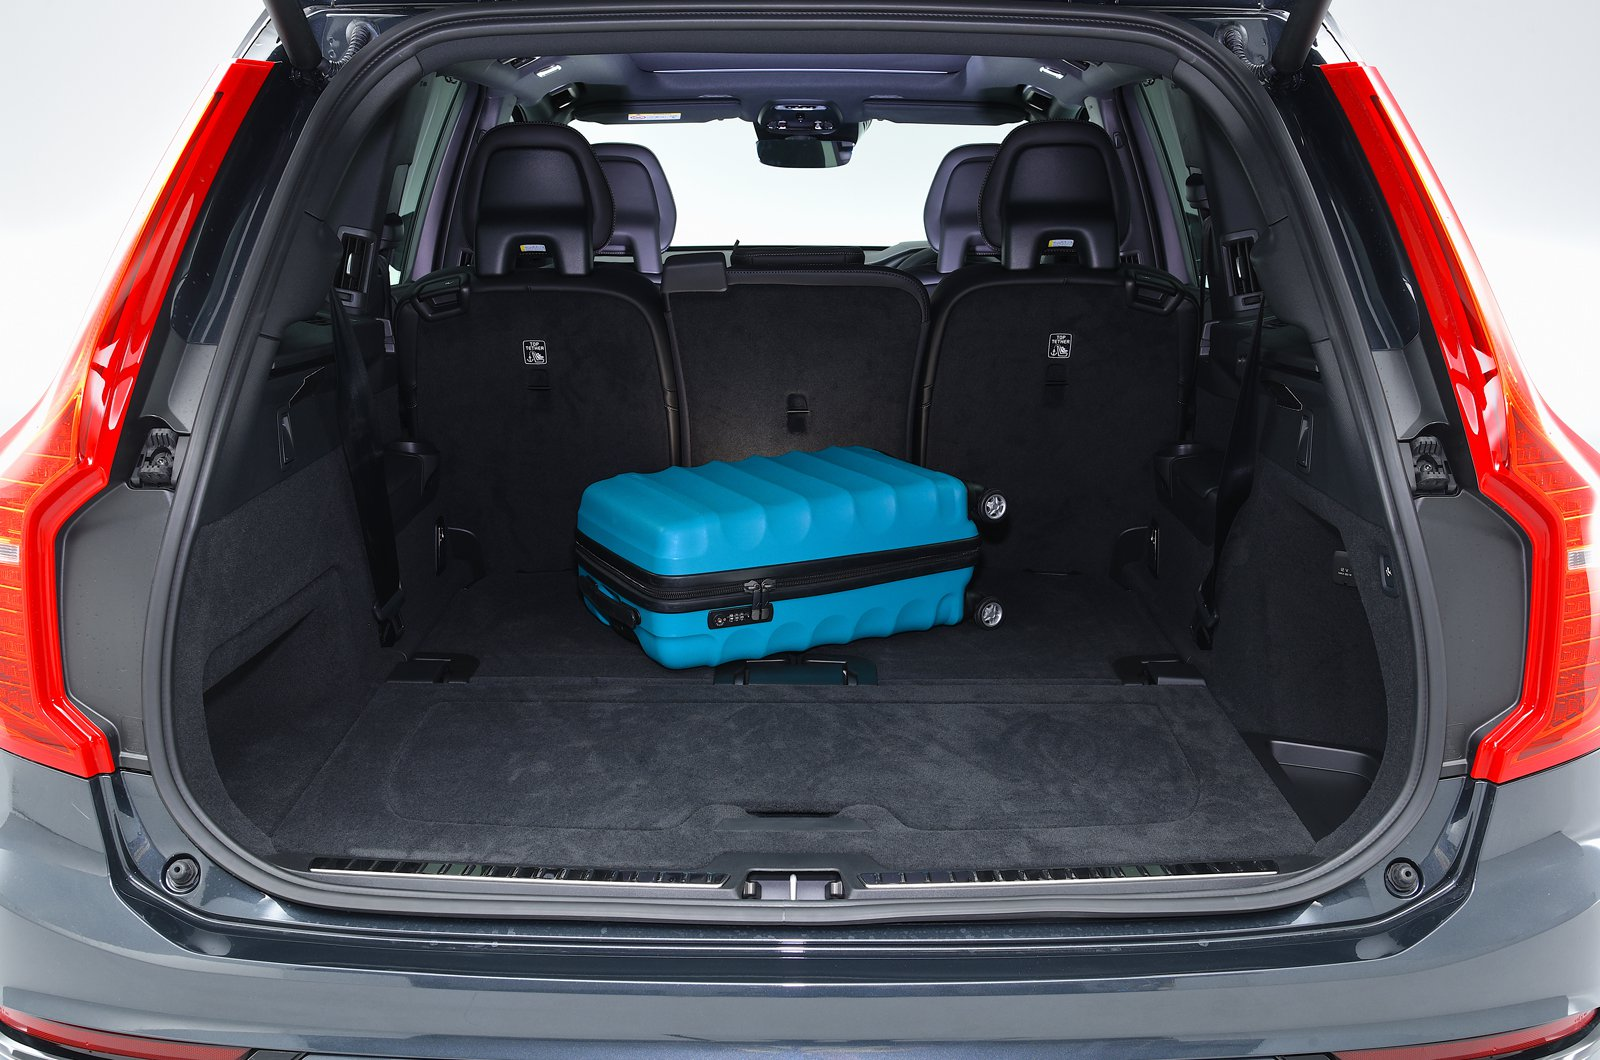 Volvo XC90 T8 boot - 69-plate car